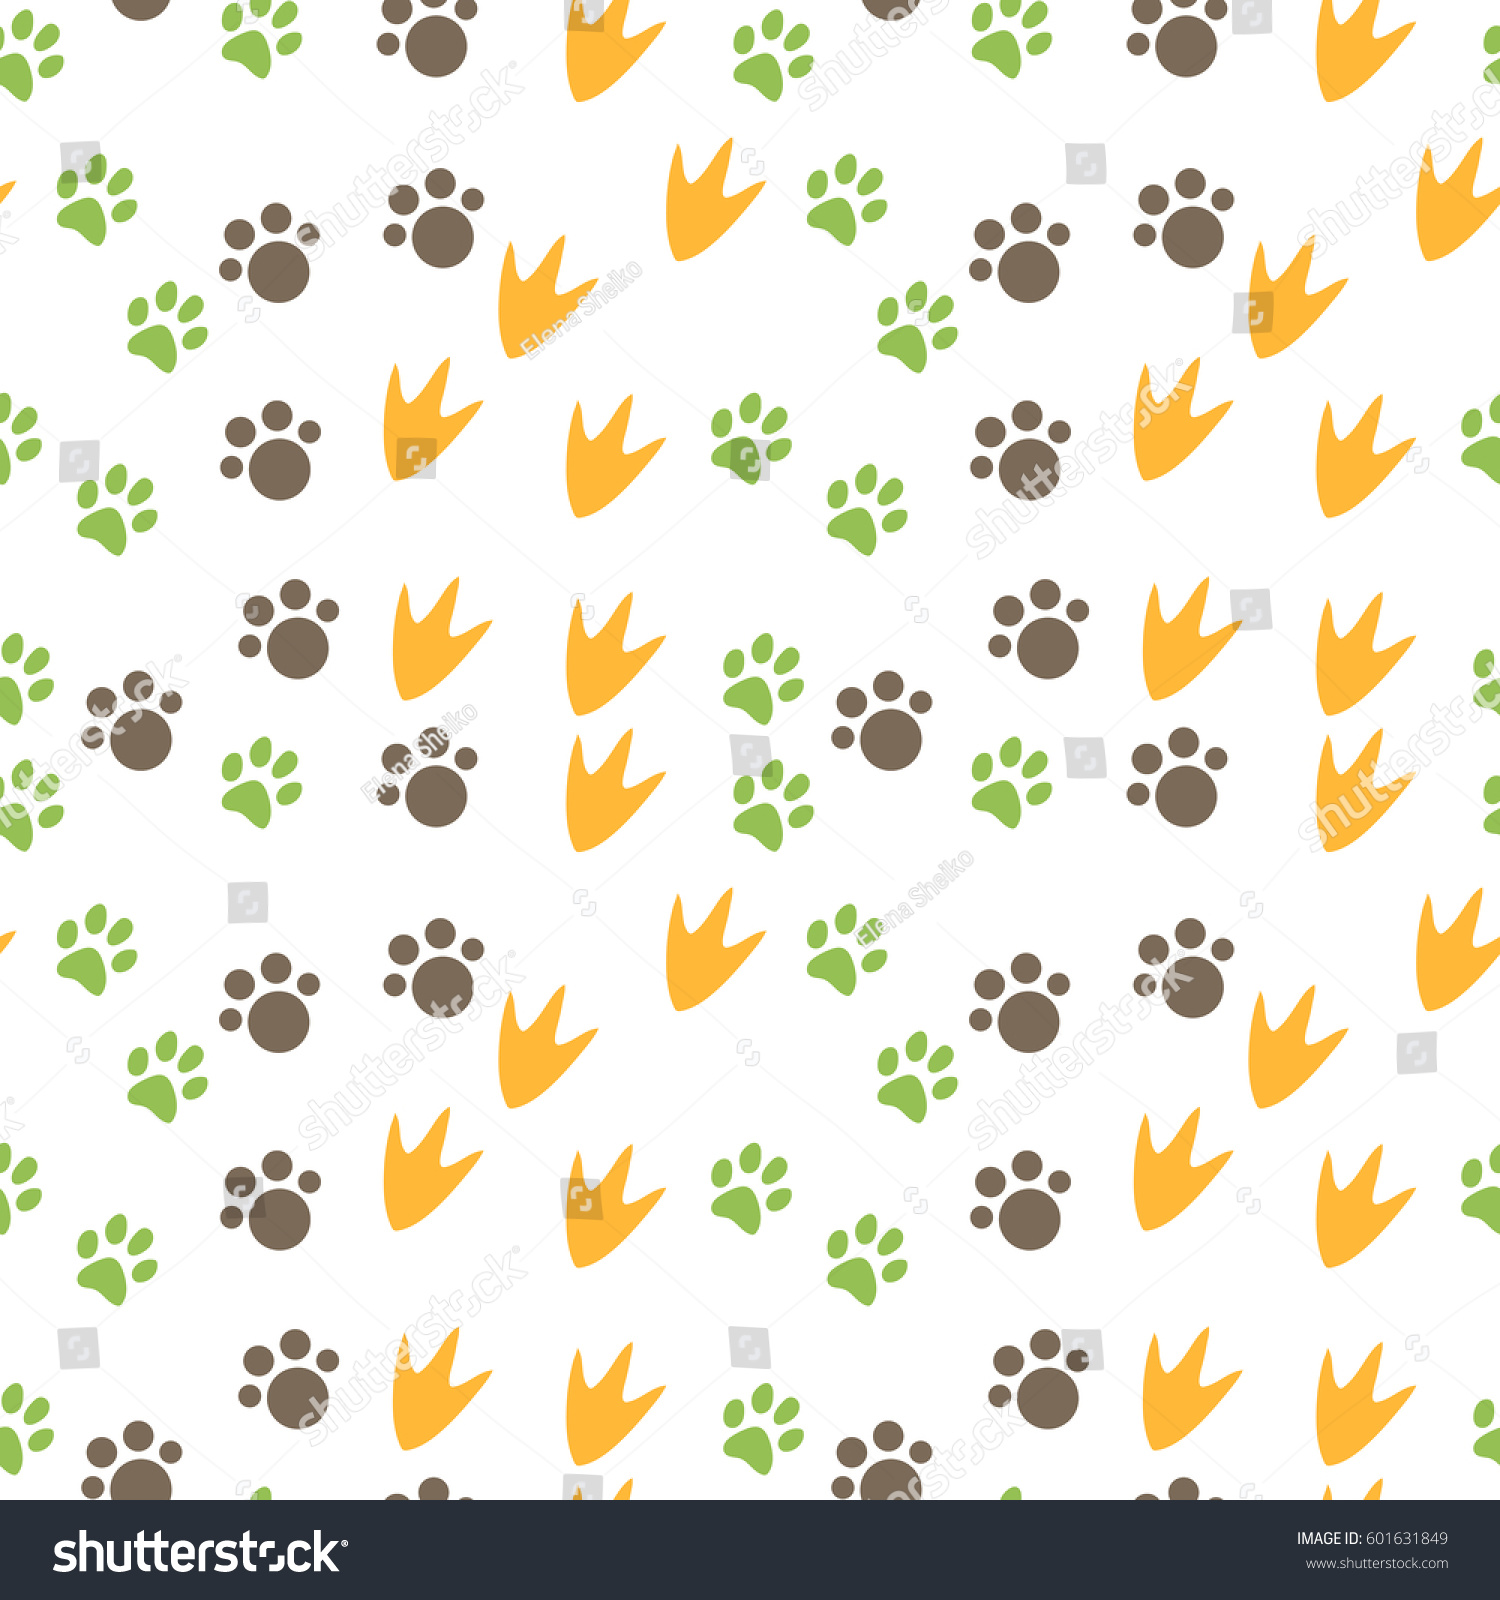 Vector Seamless Pattern With Animal Footprints Can Be Used For Wallpaper Web Page Background